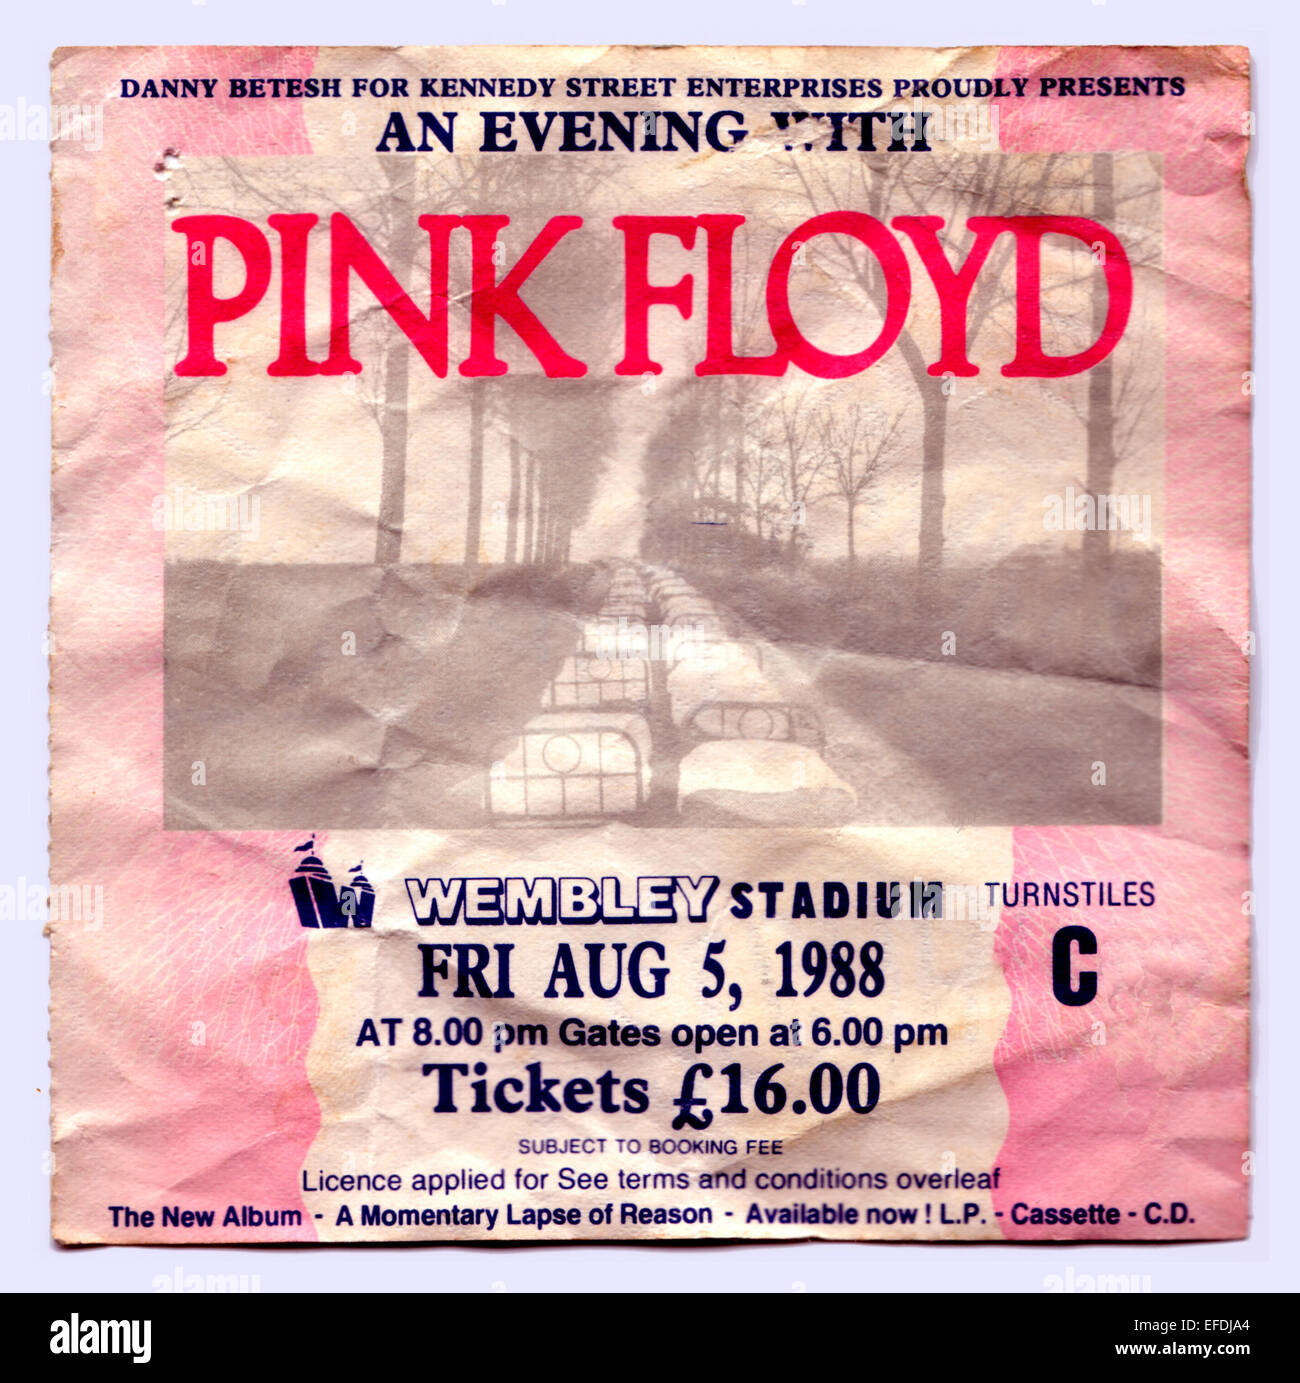 Pink Floyd Concert Ticket for Wembley Stadium, London, Britain - 5th August 1988 - Stock Image